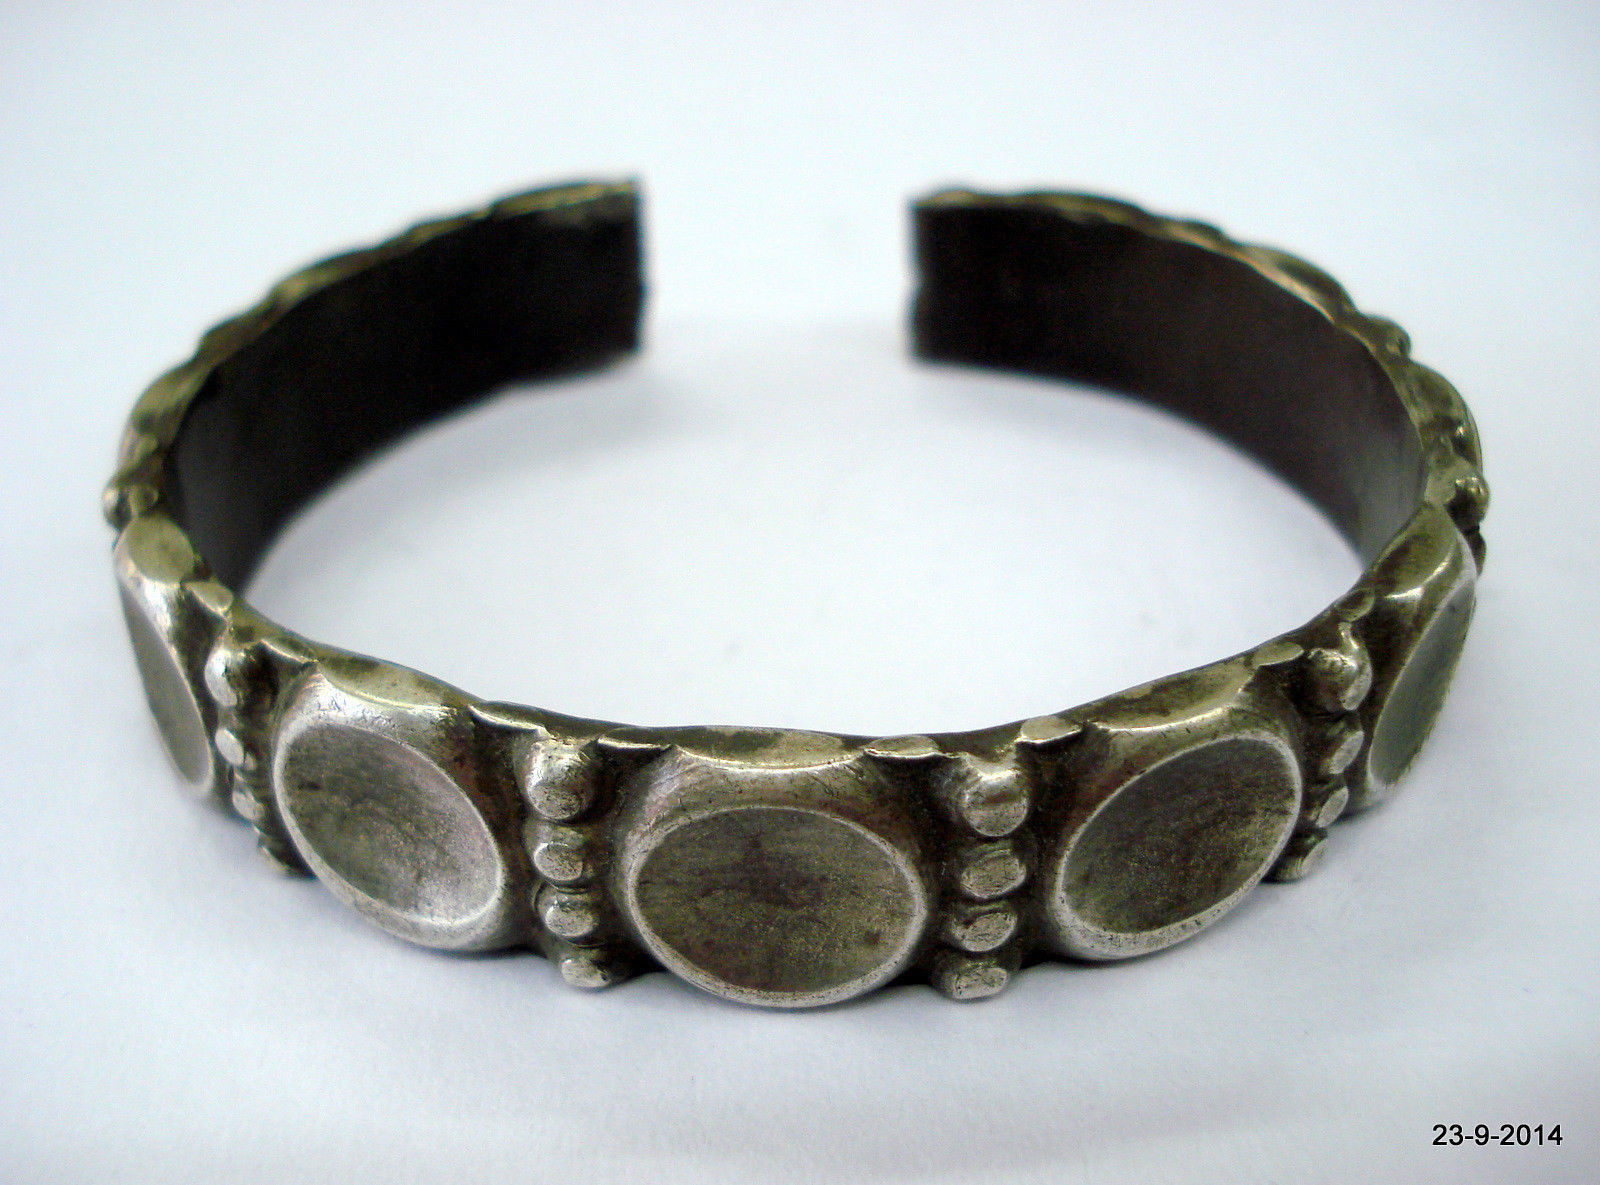 vintage antique tribal old silver bracelet bangle cuff for teen girls gift